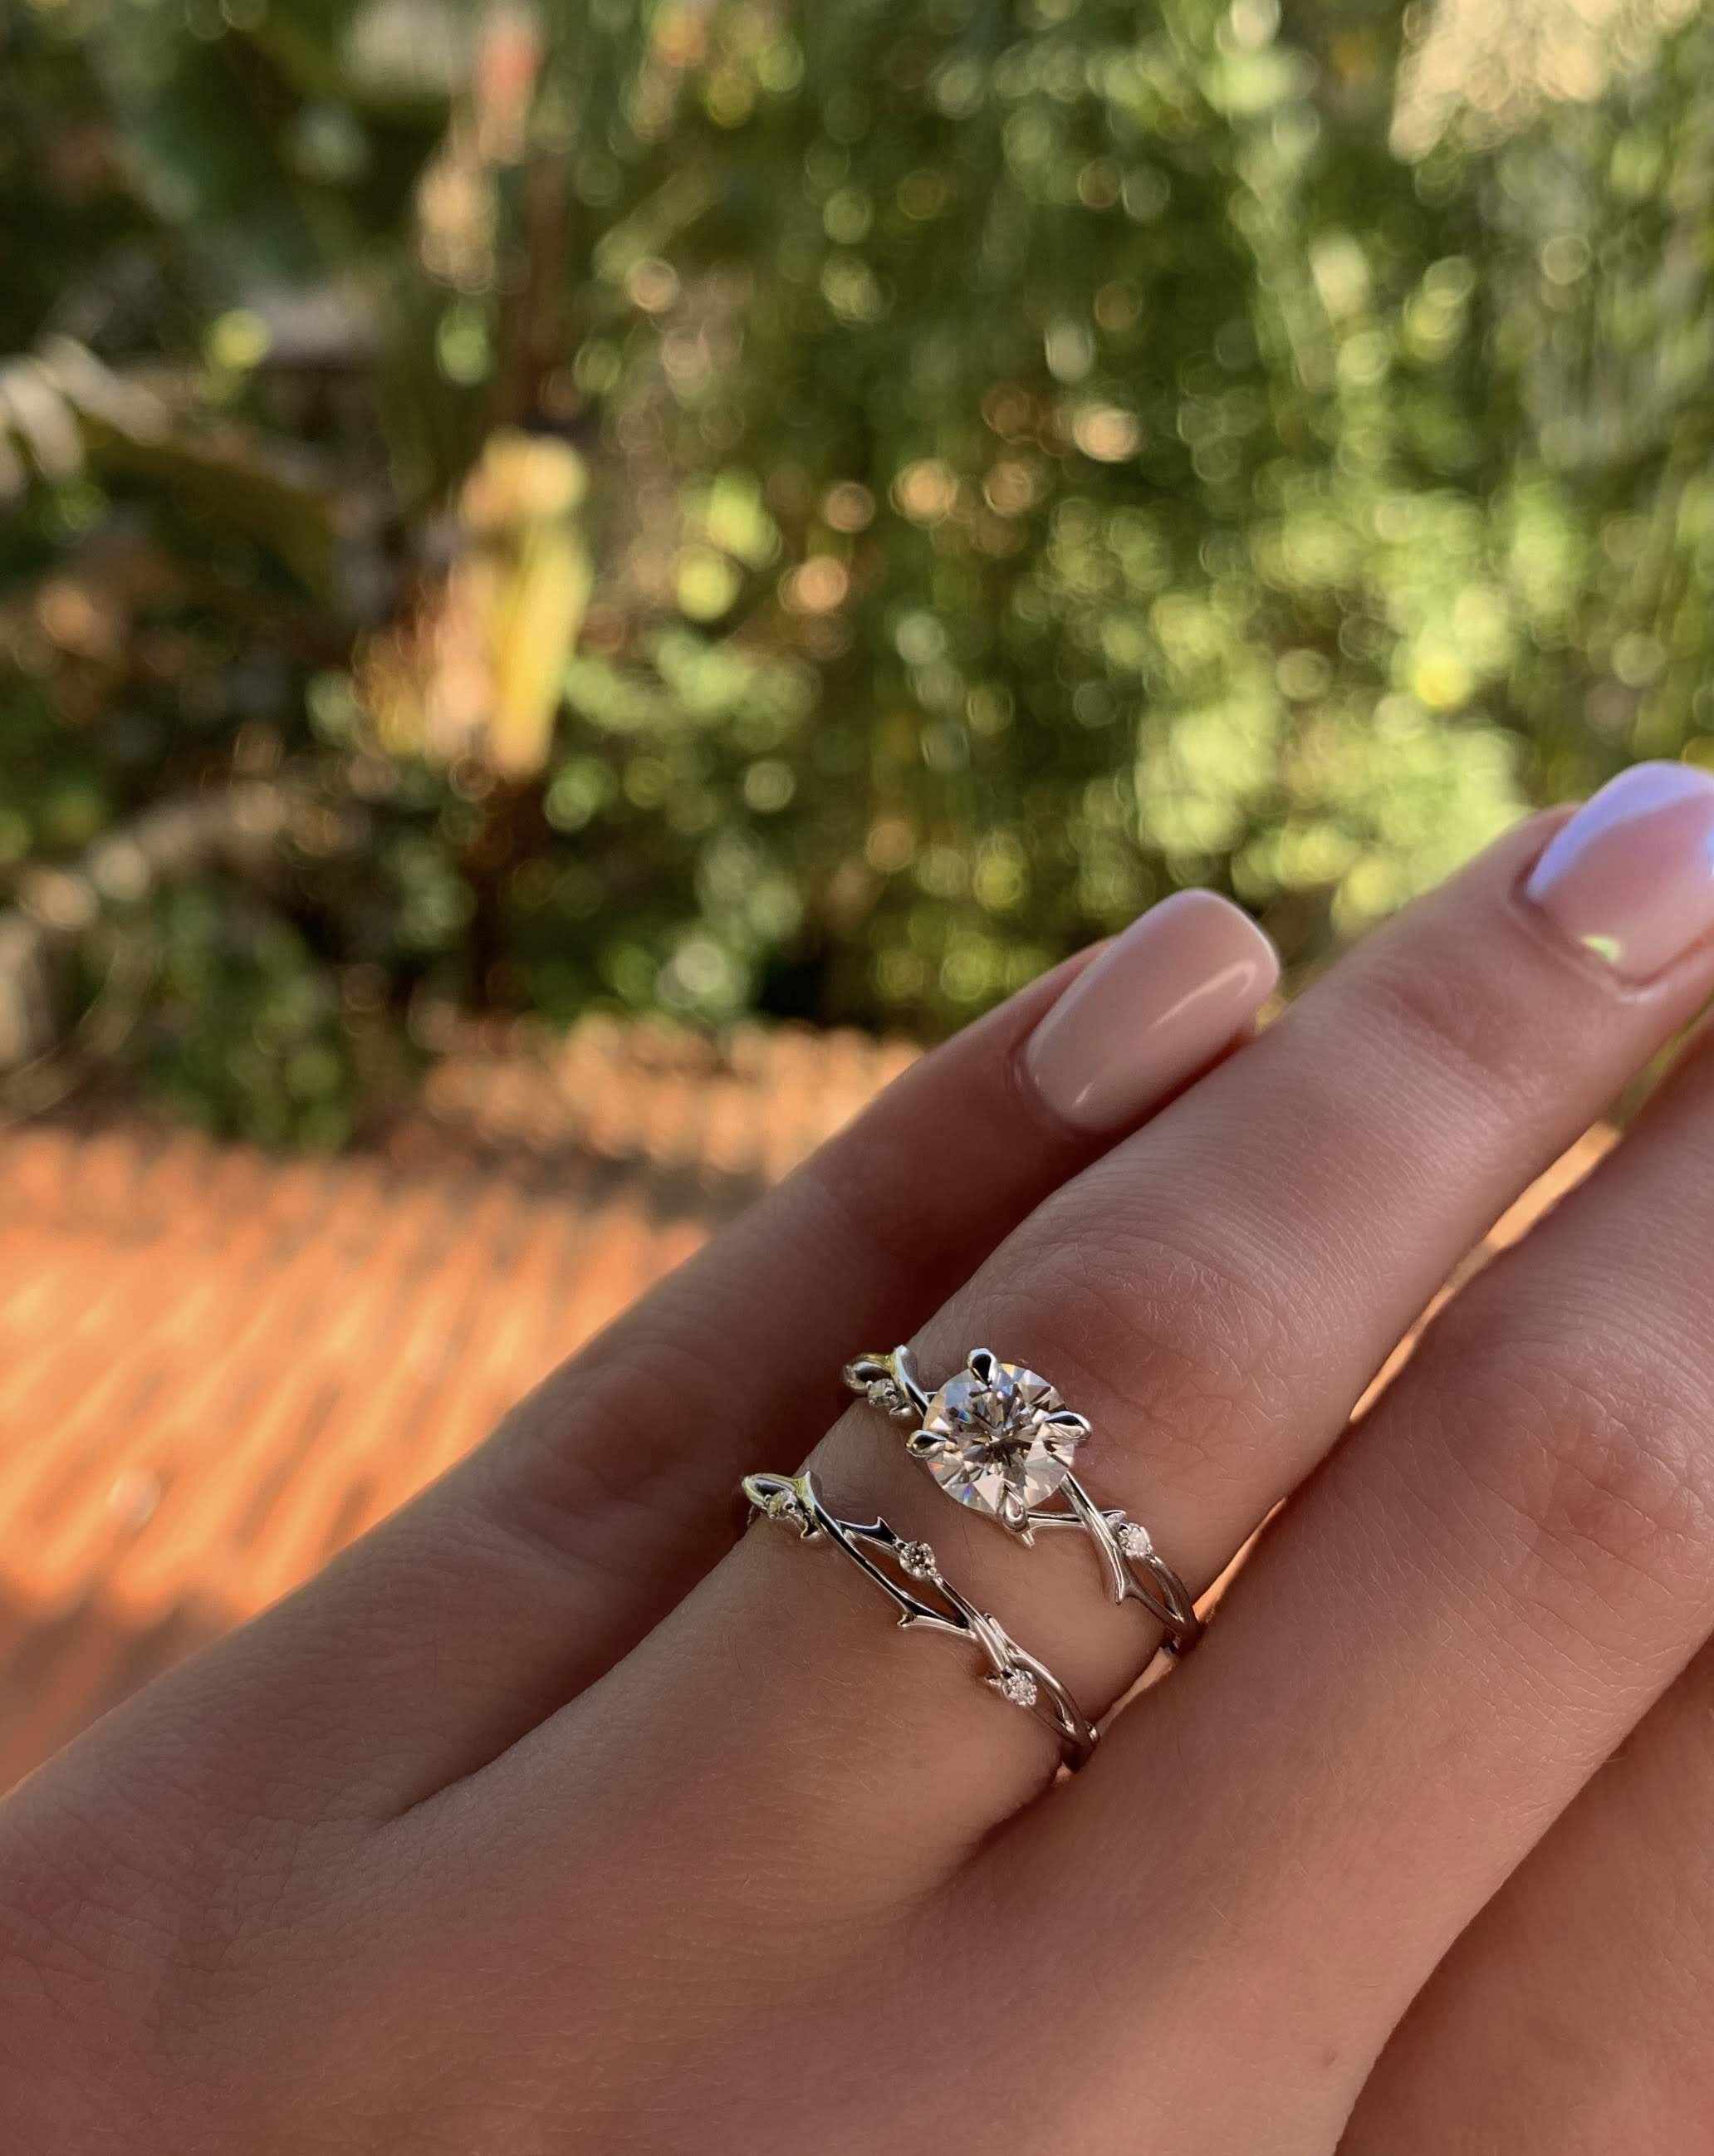 Twig Engagement Set Petal Bridal Set Dainty Twig Engagement Etsy Twig Engagement Ring Engagement Sets Twig Engagement Ring Set